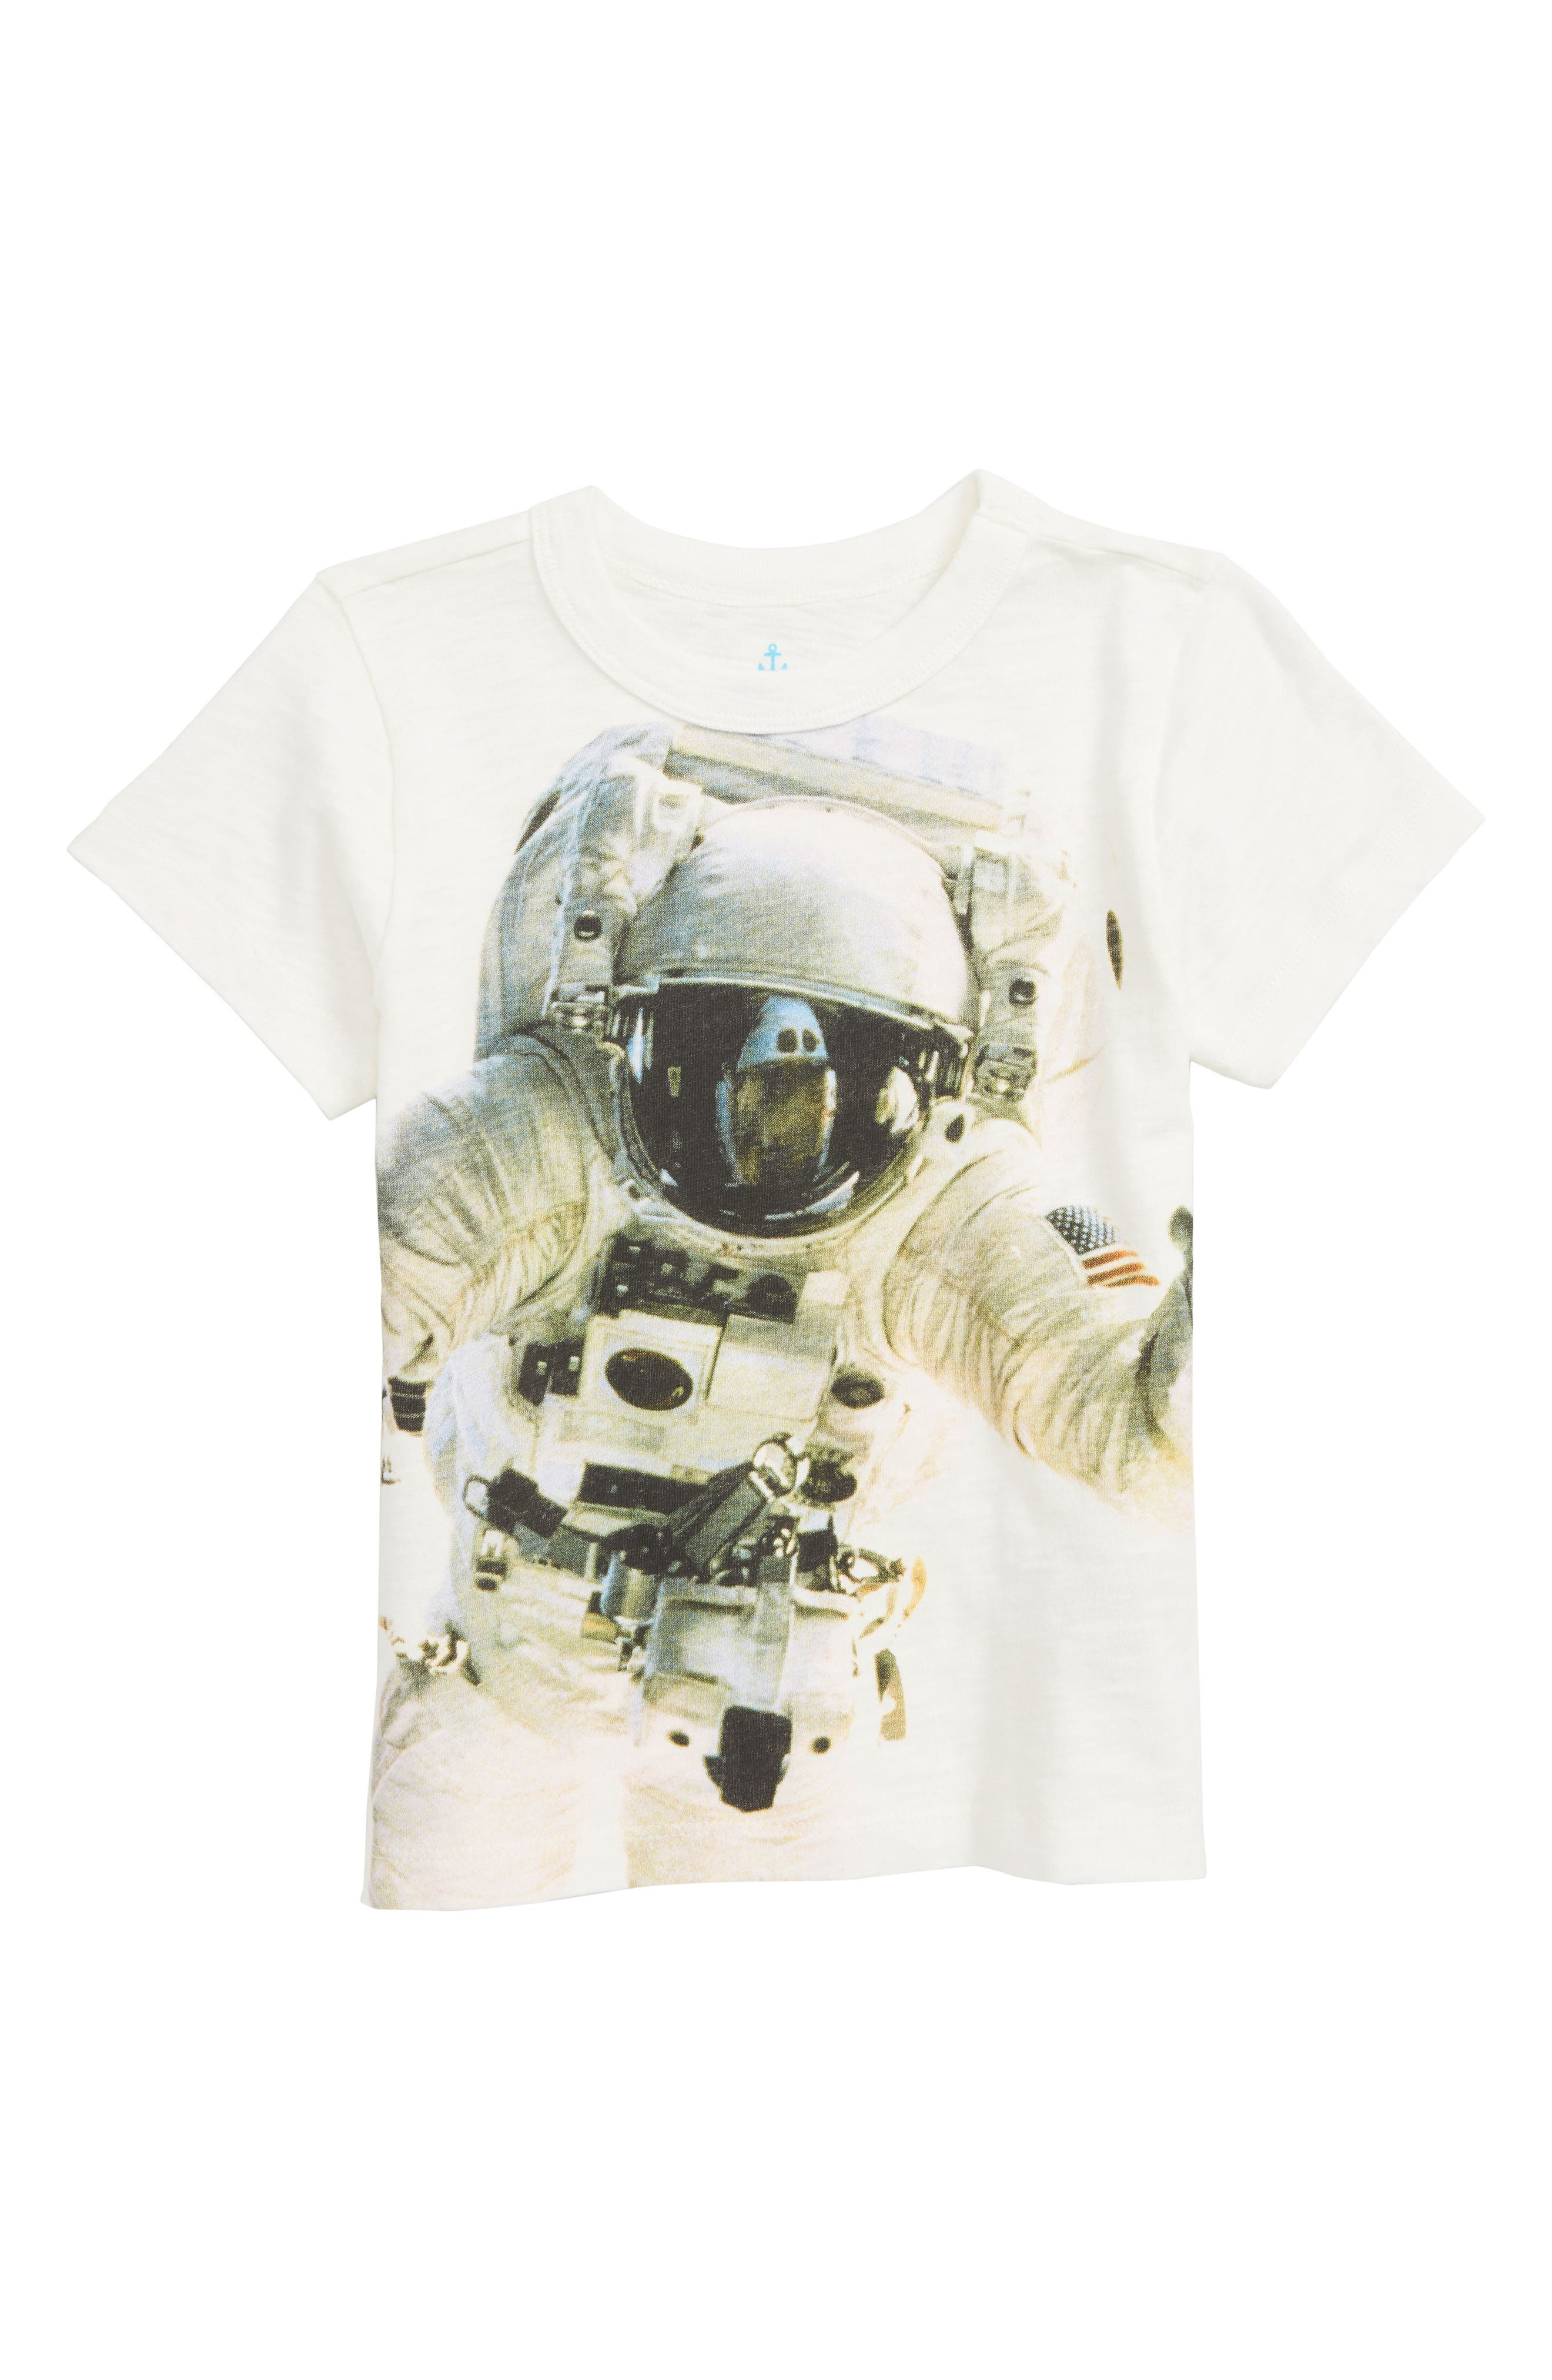 CREWCUTS BY J.CREW Astronaut Graphic T-Shirt, Main, color, PLASTER WHITE